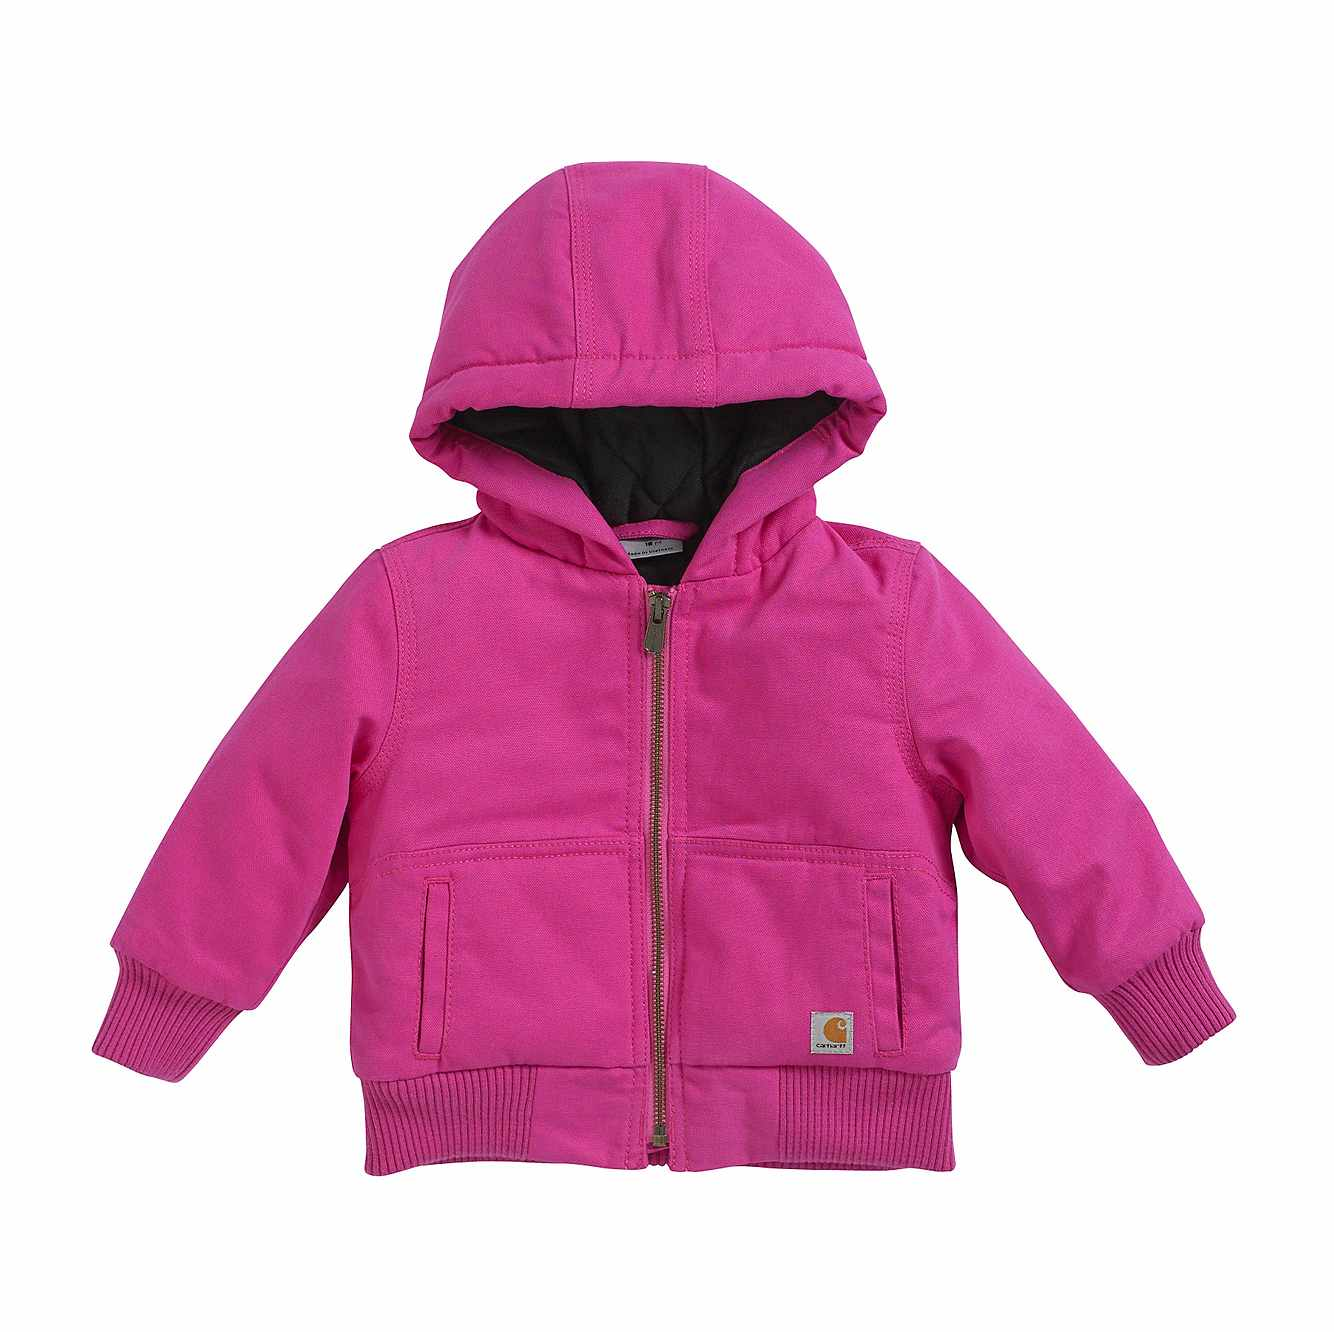 Picture of Wildwood Jacket in Raspberry